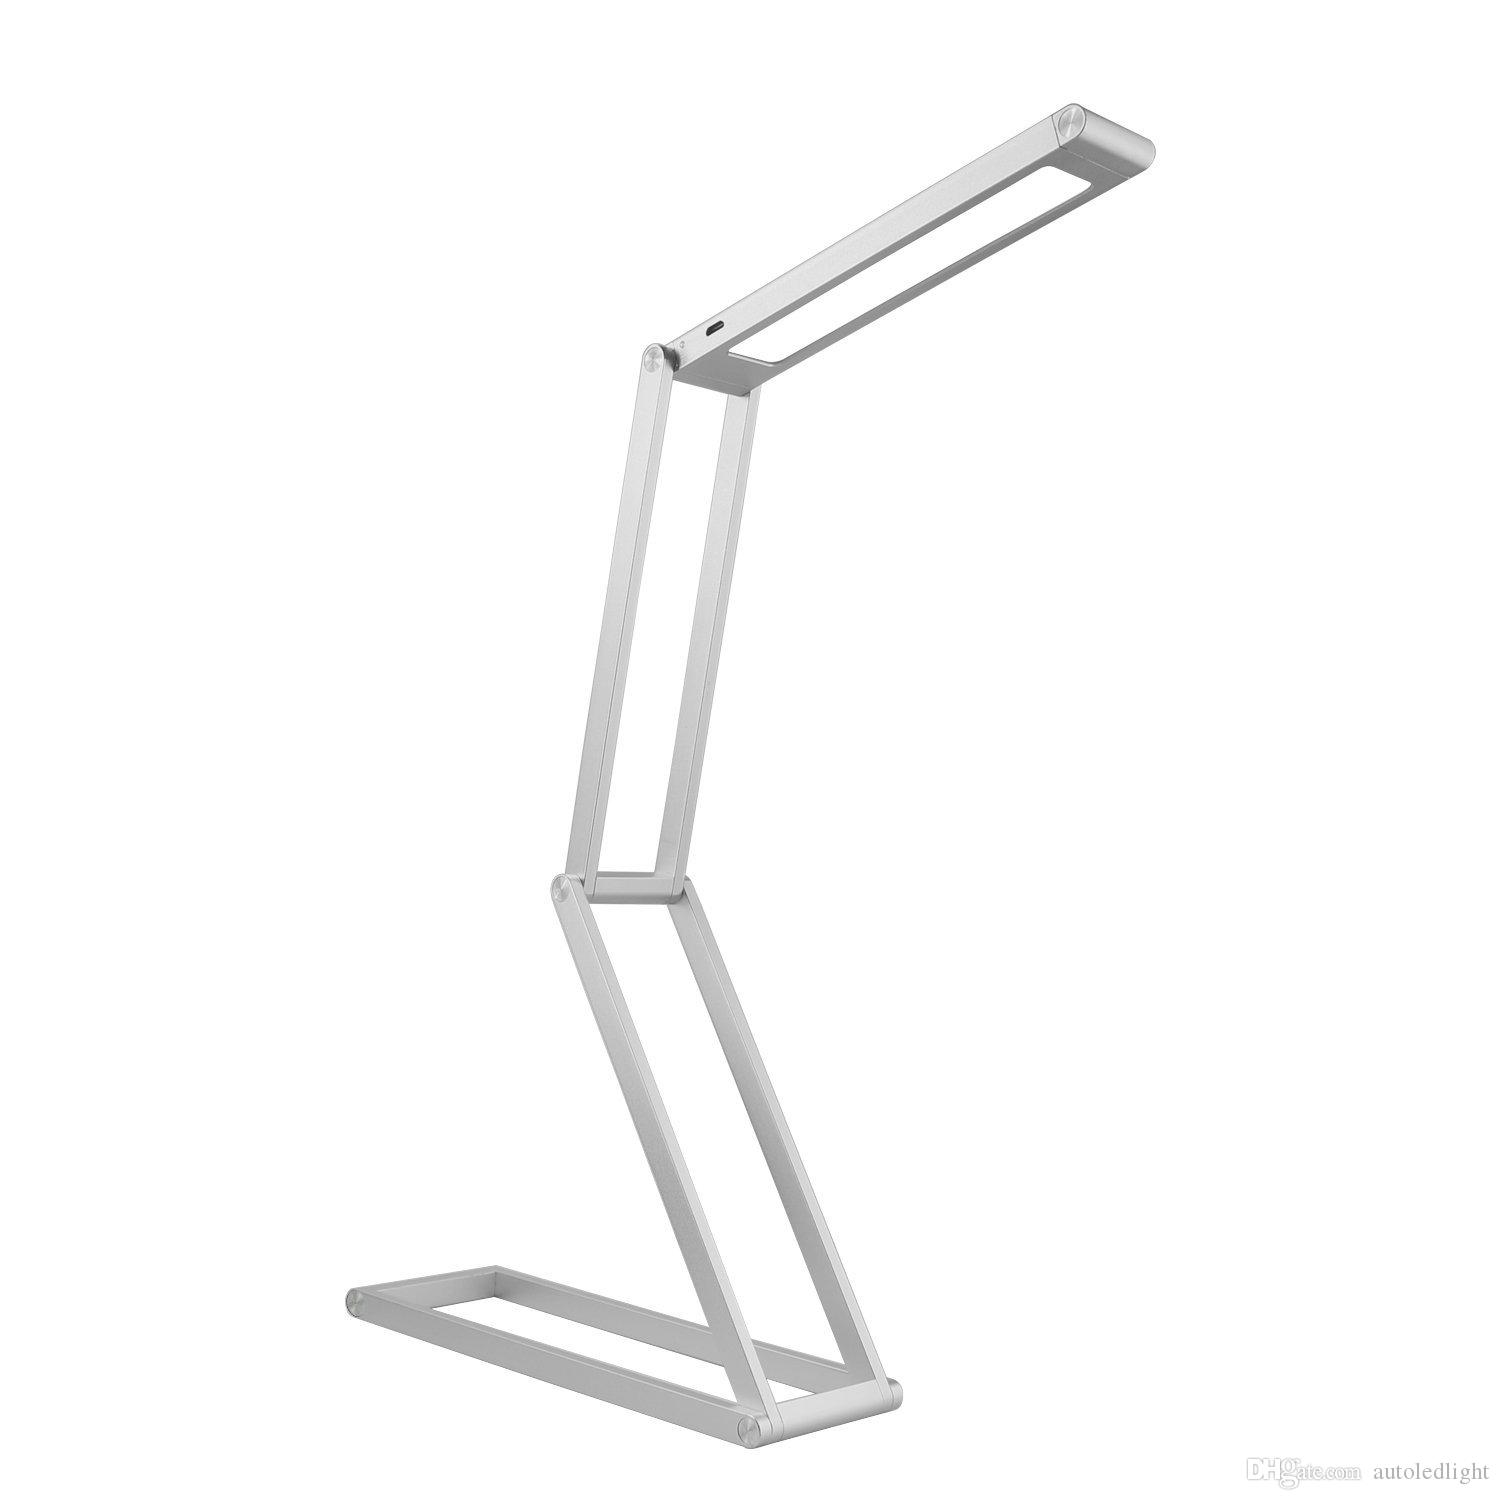 Foldable LED Desk Lamp Transformers Dimmable Table Aluminum Alloy Lamp for Reading studing relax for room